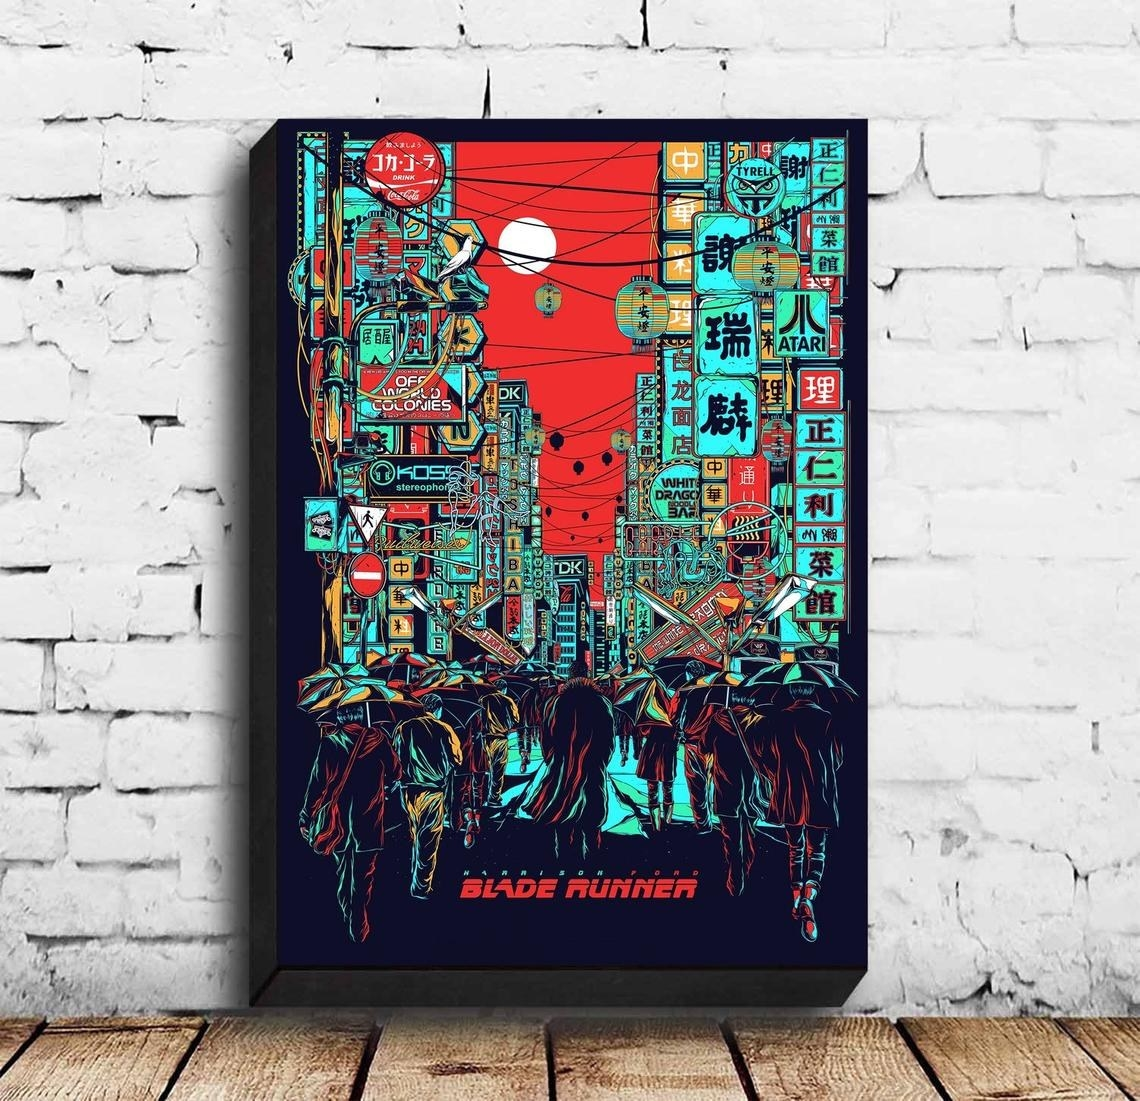 The Blade Runner canvas print against a brick wall